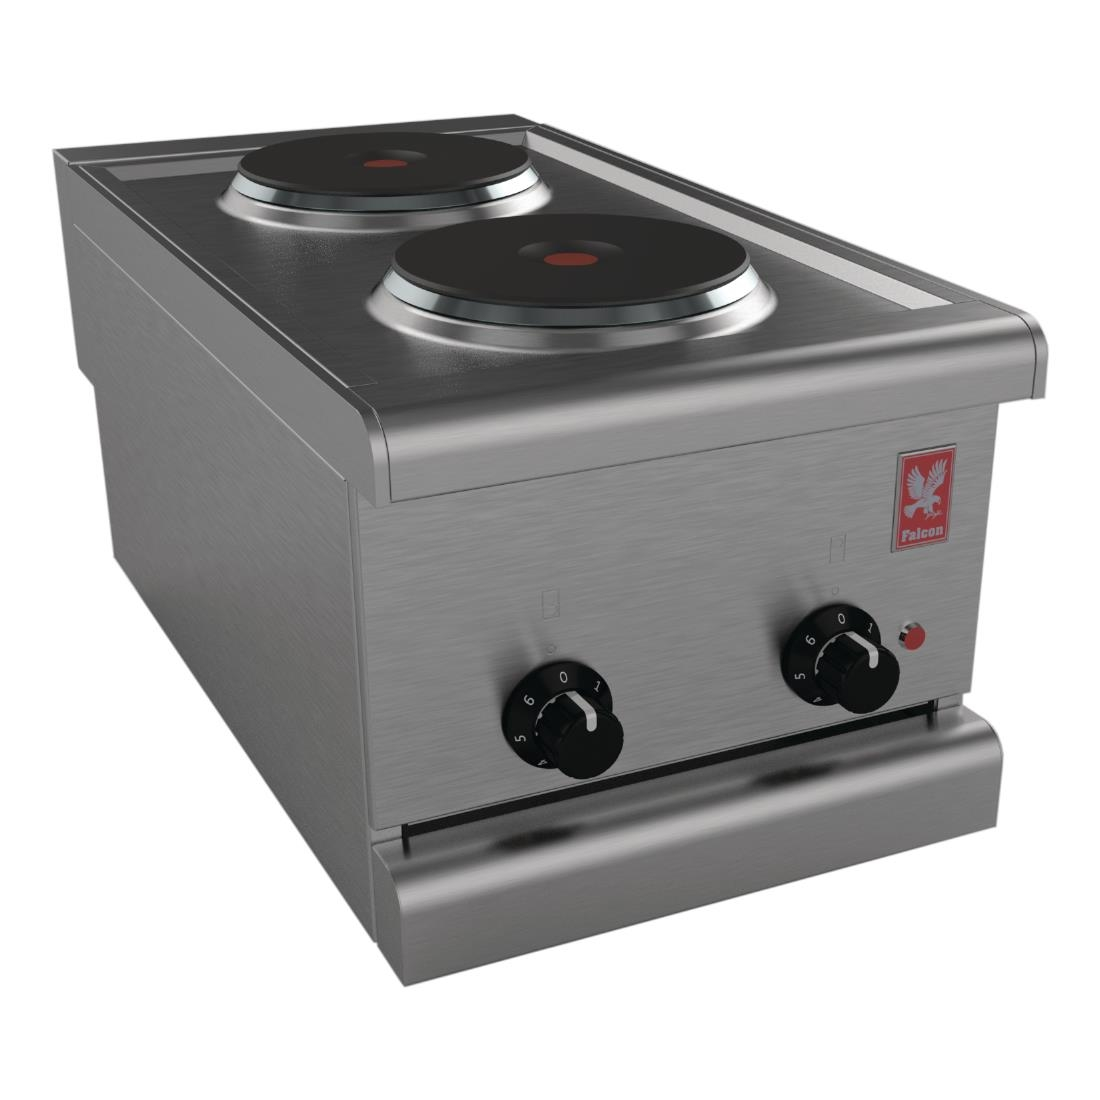 Image of Falcon 350 Series 2 Hotplate Electric Boiling Top E350/32